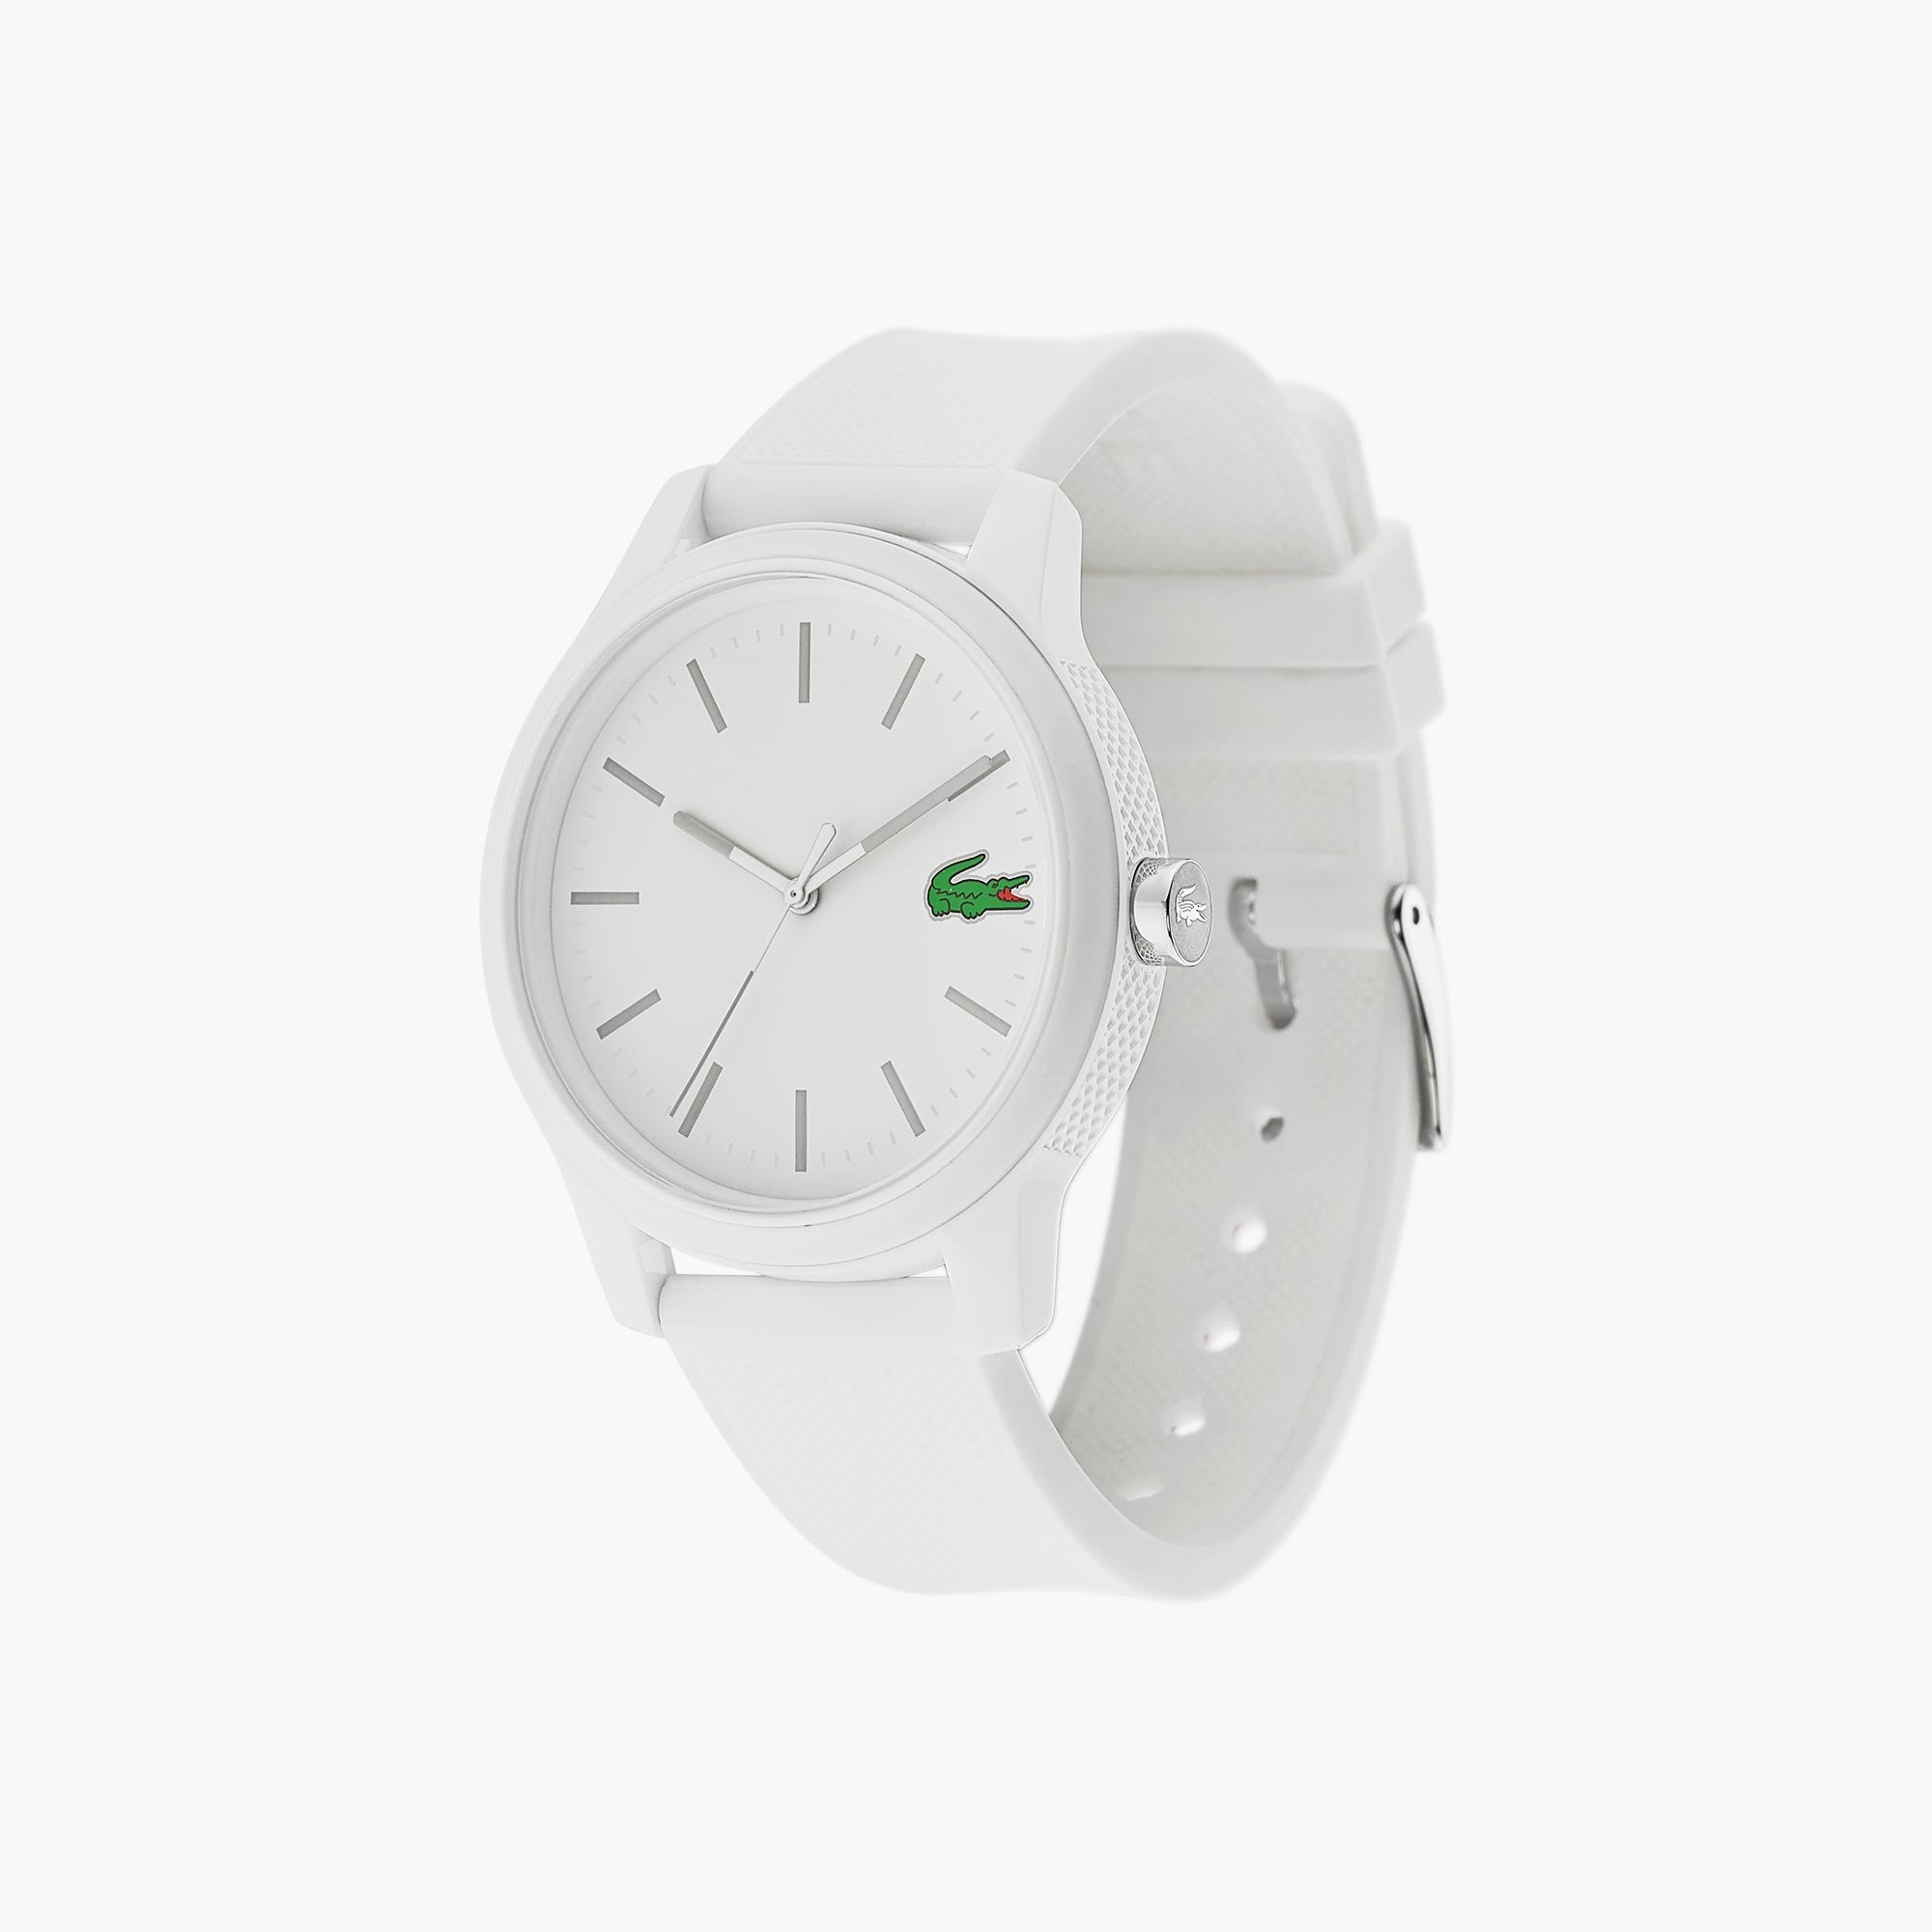 Men's Lacoste 12.12 Watch with White Silicone Strap